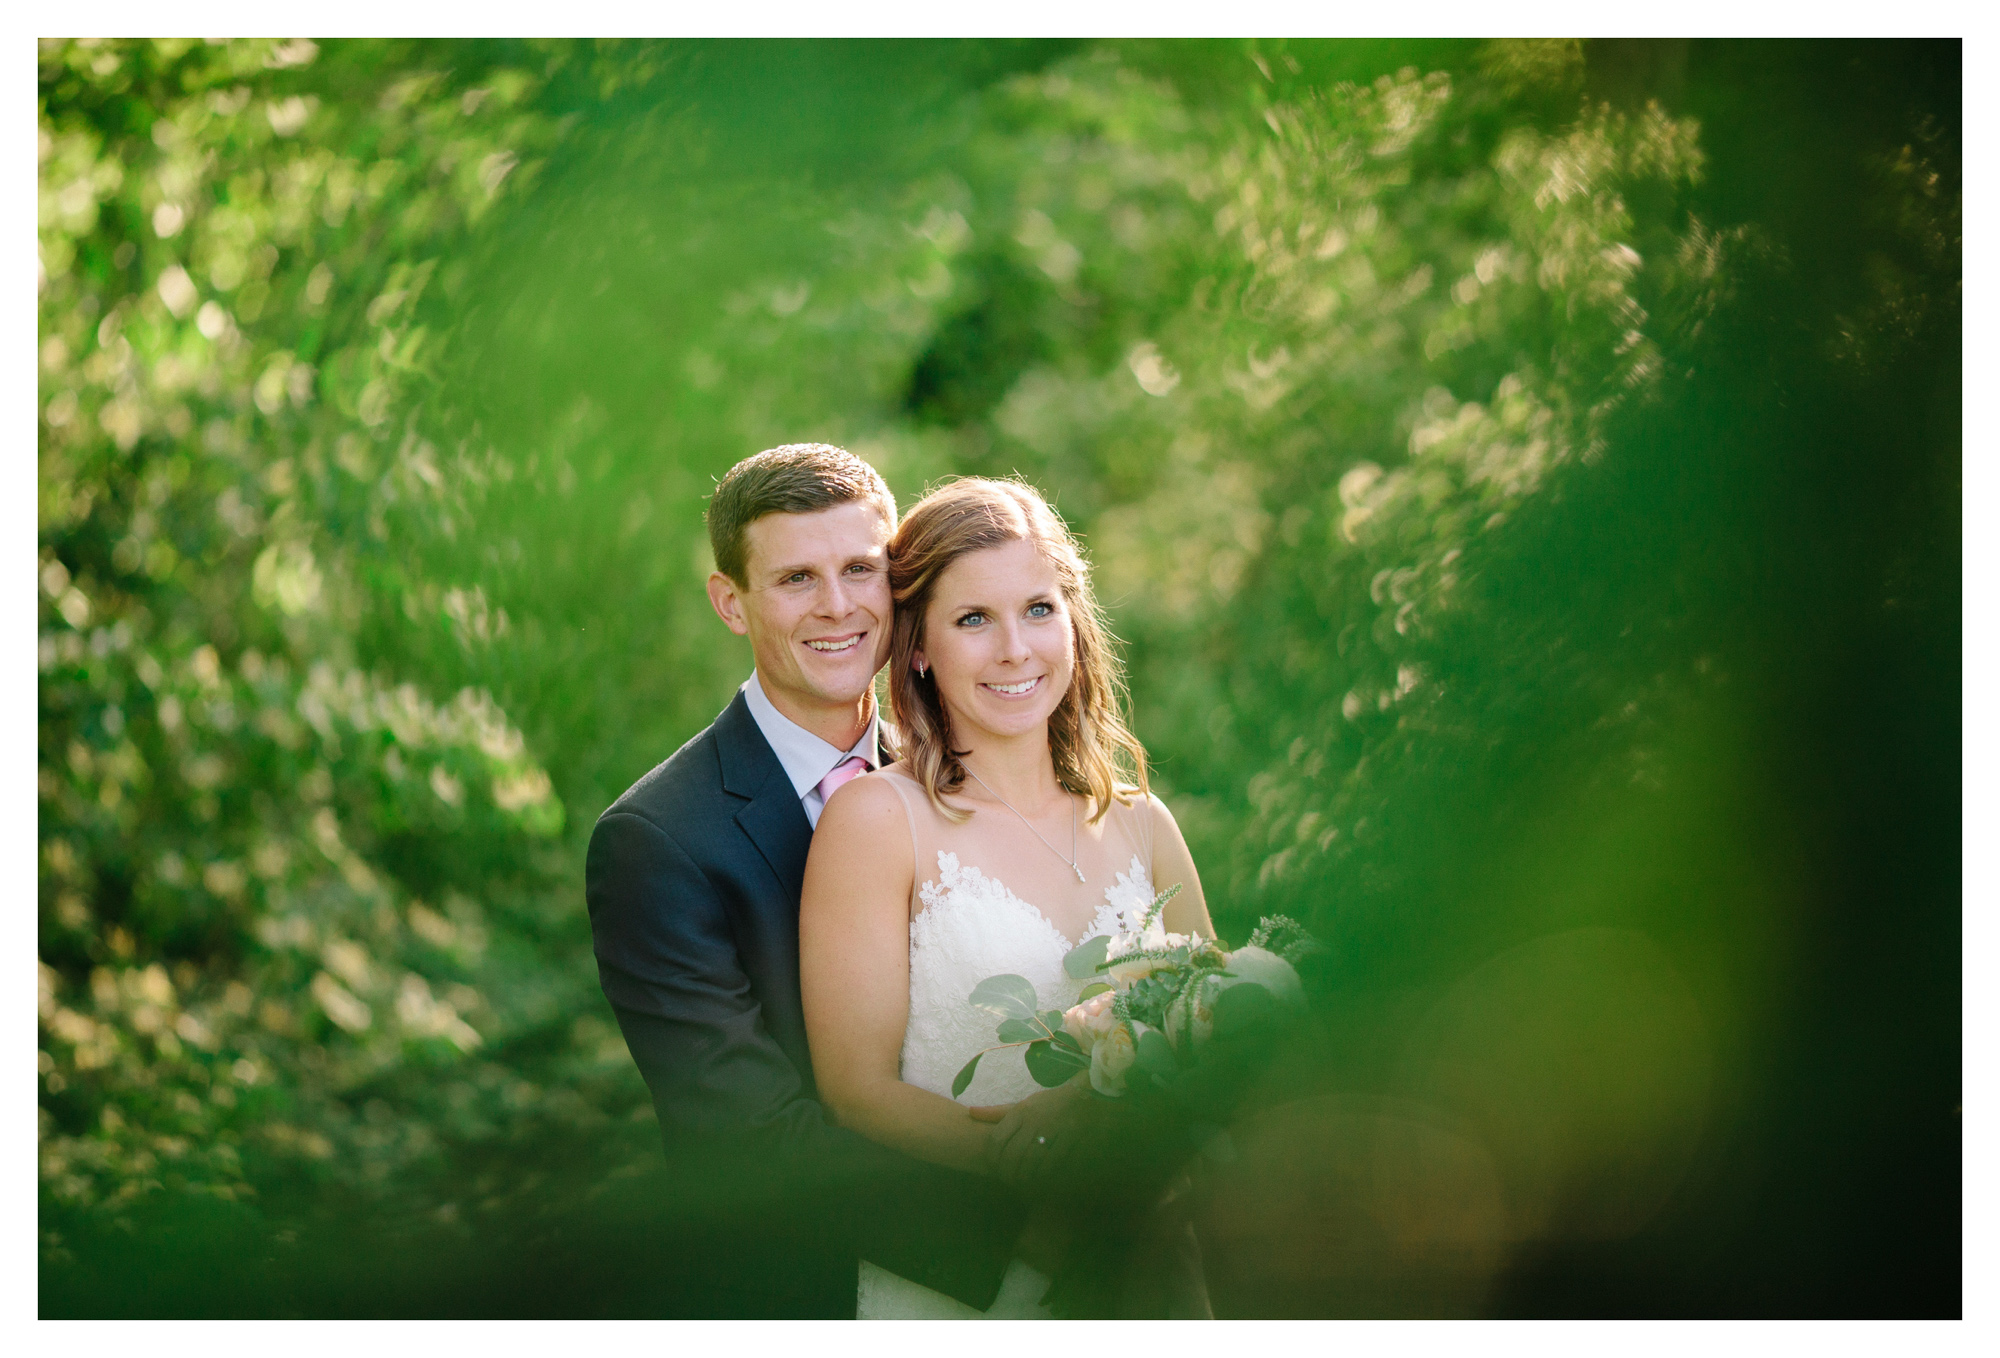 Canopy creek wedding photography 25